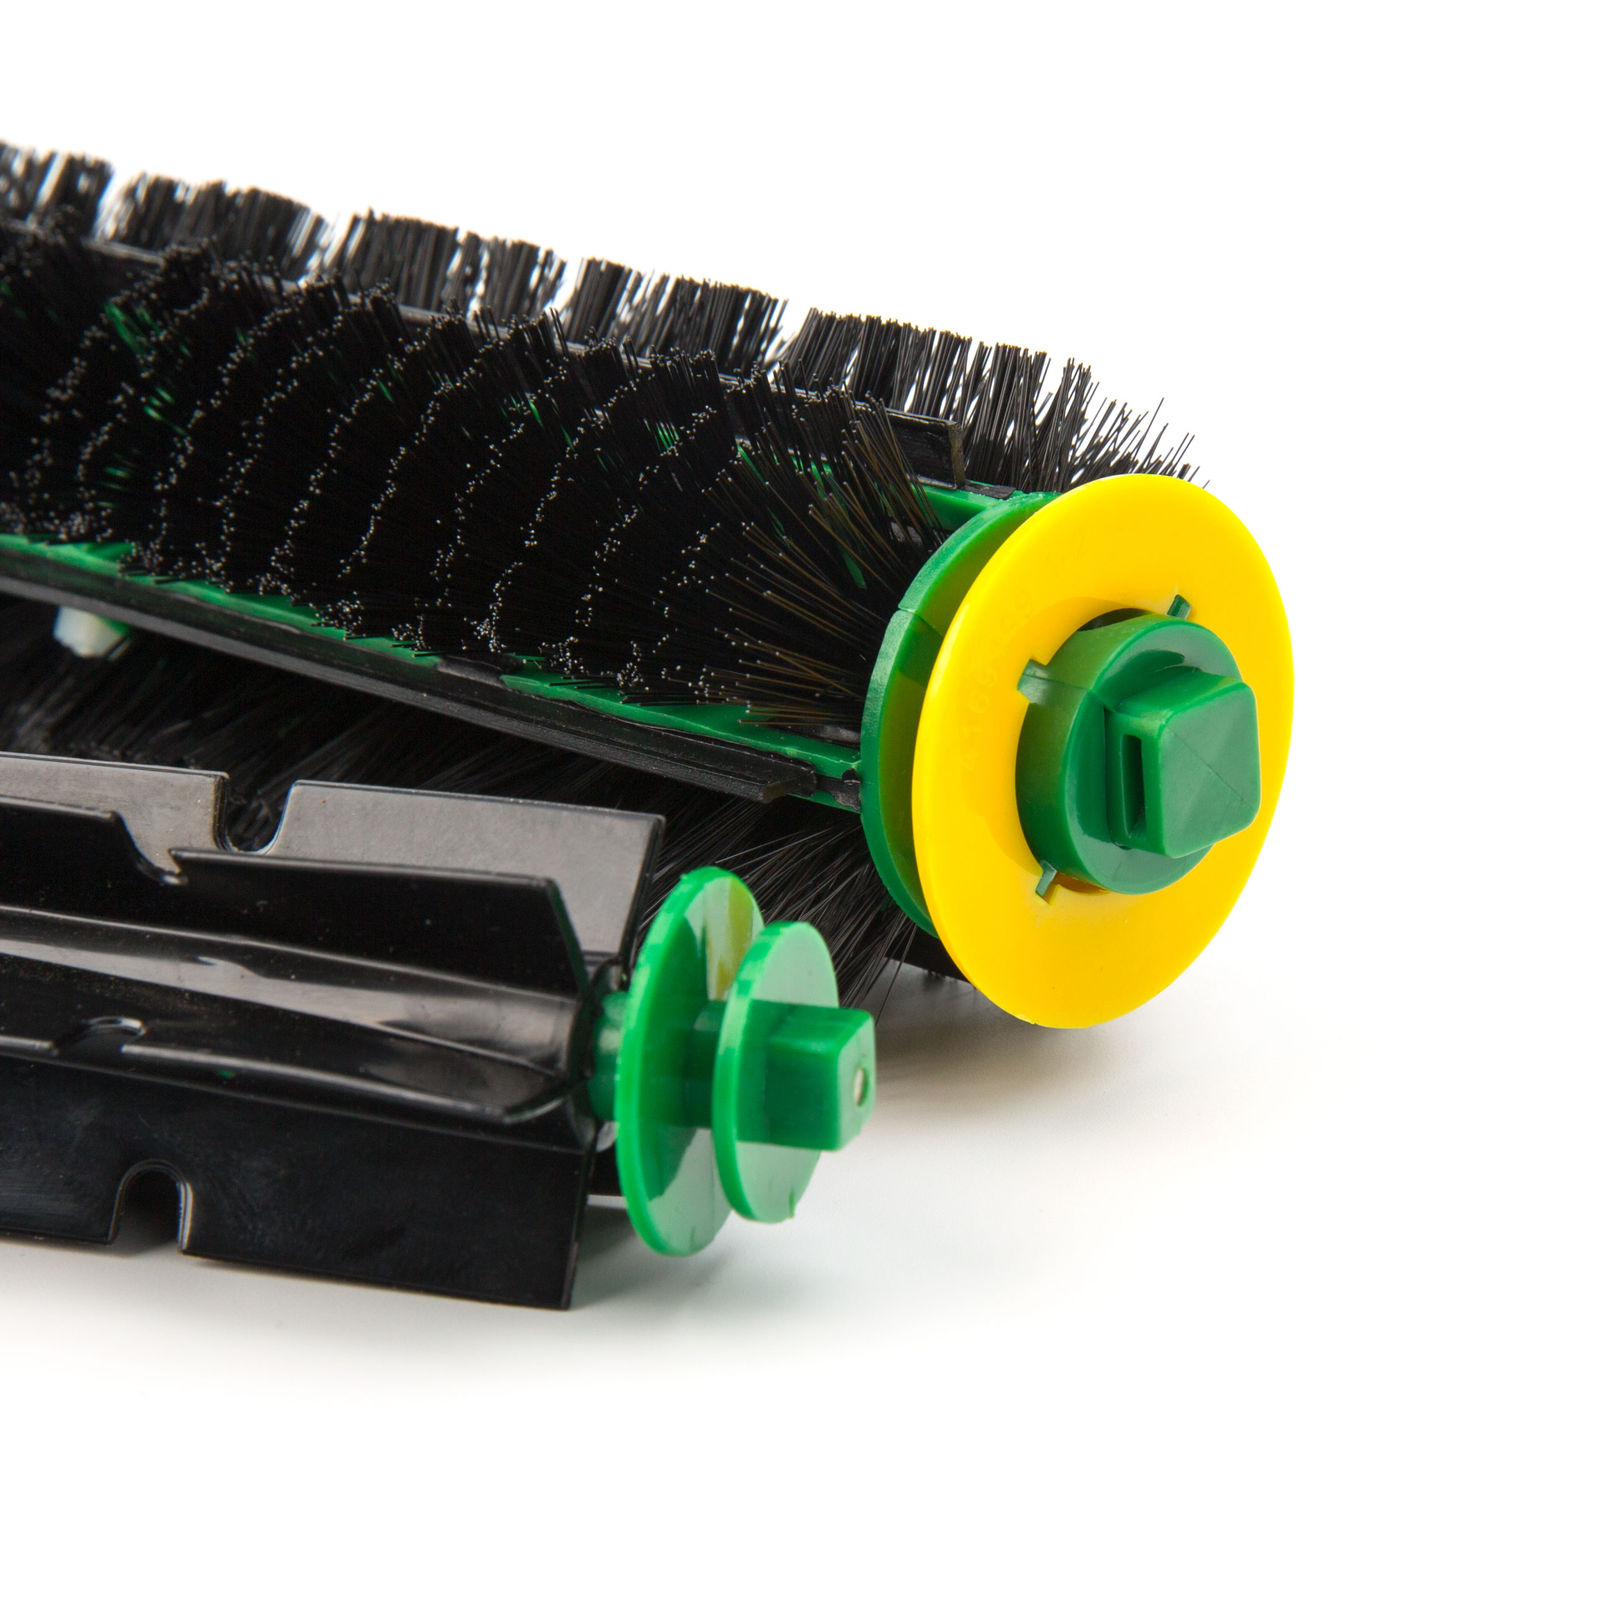 Vacuum Brush Cleaning Replacement Parts Kit For Irobot